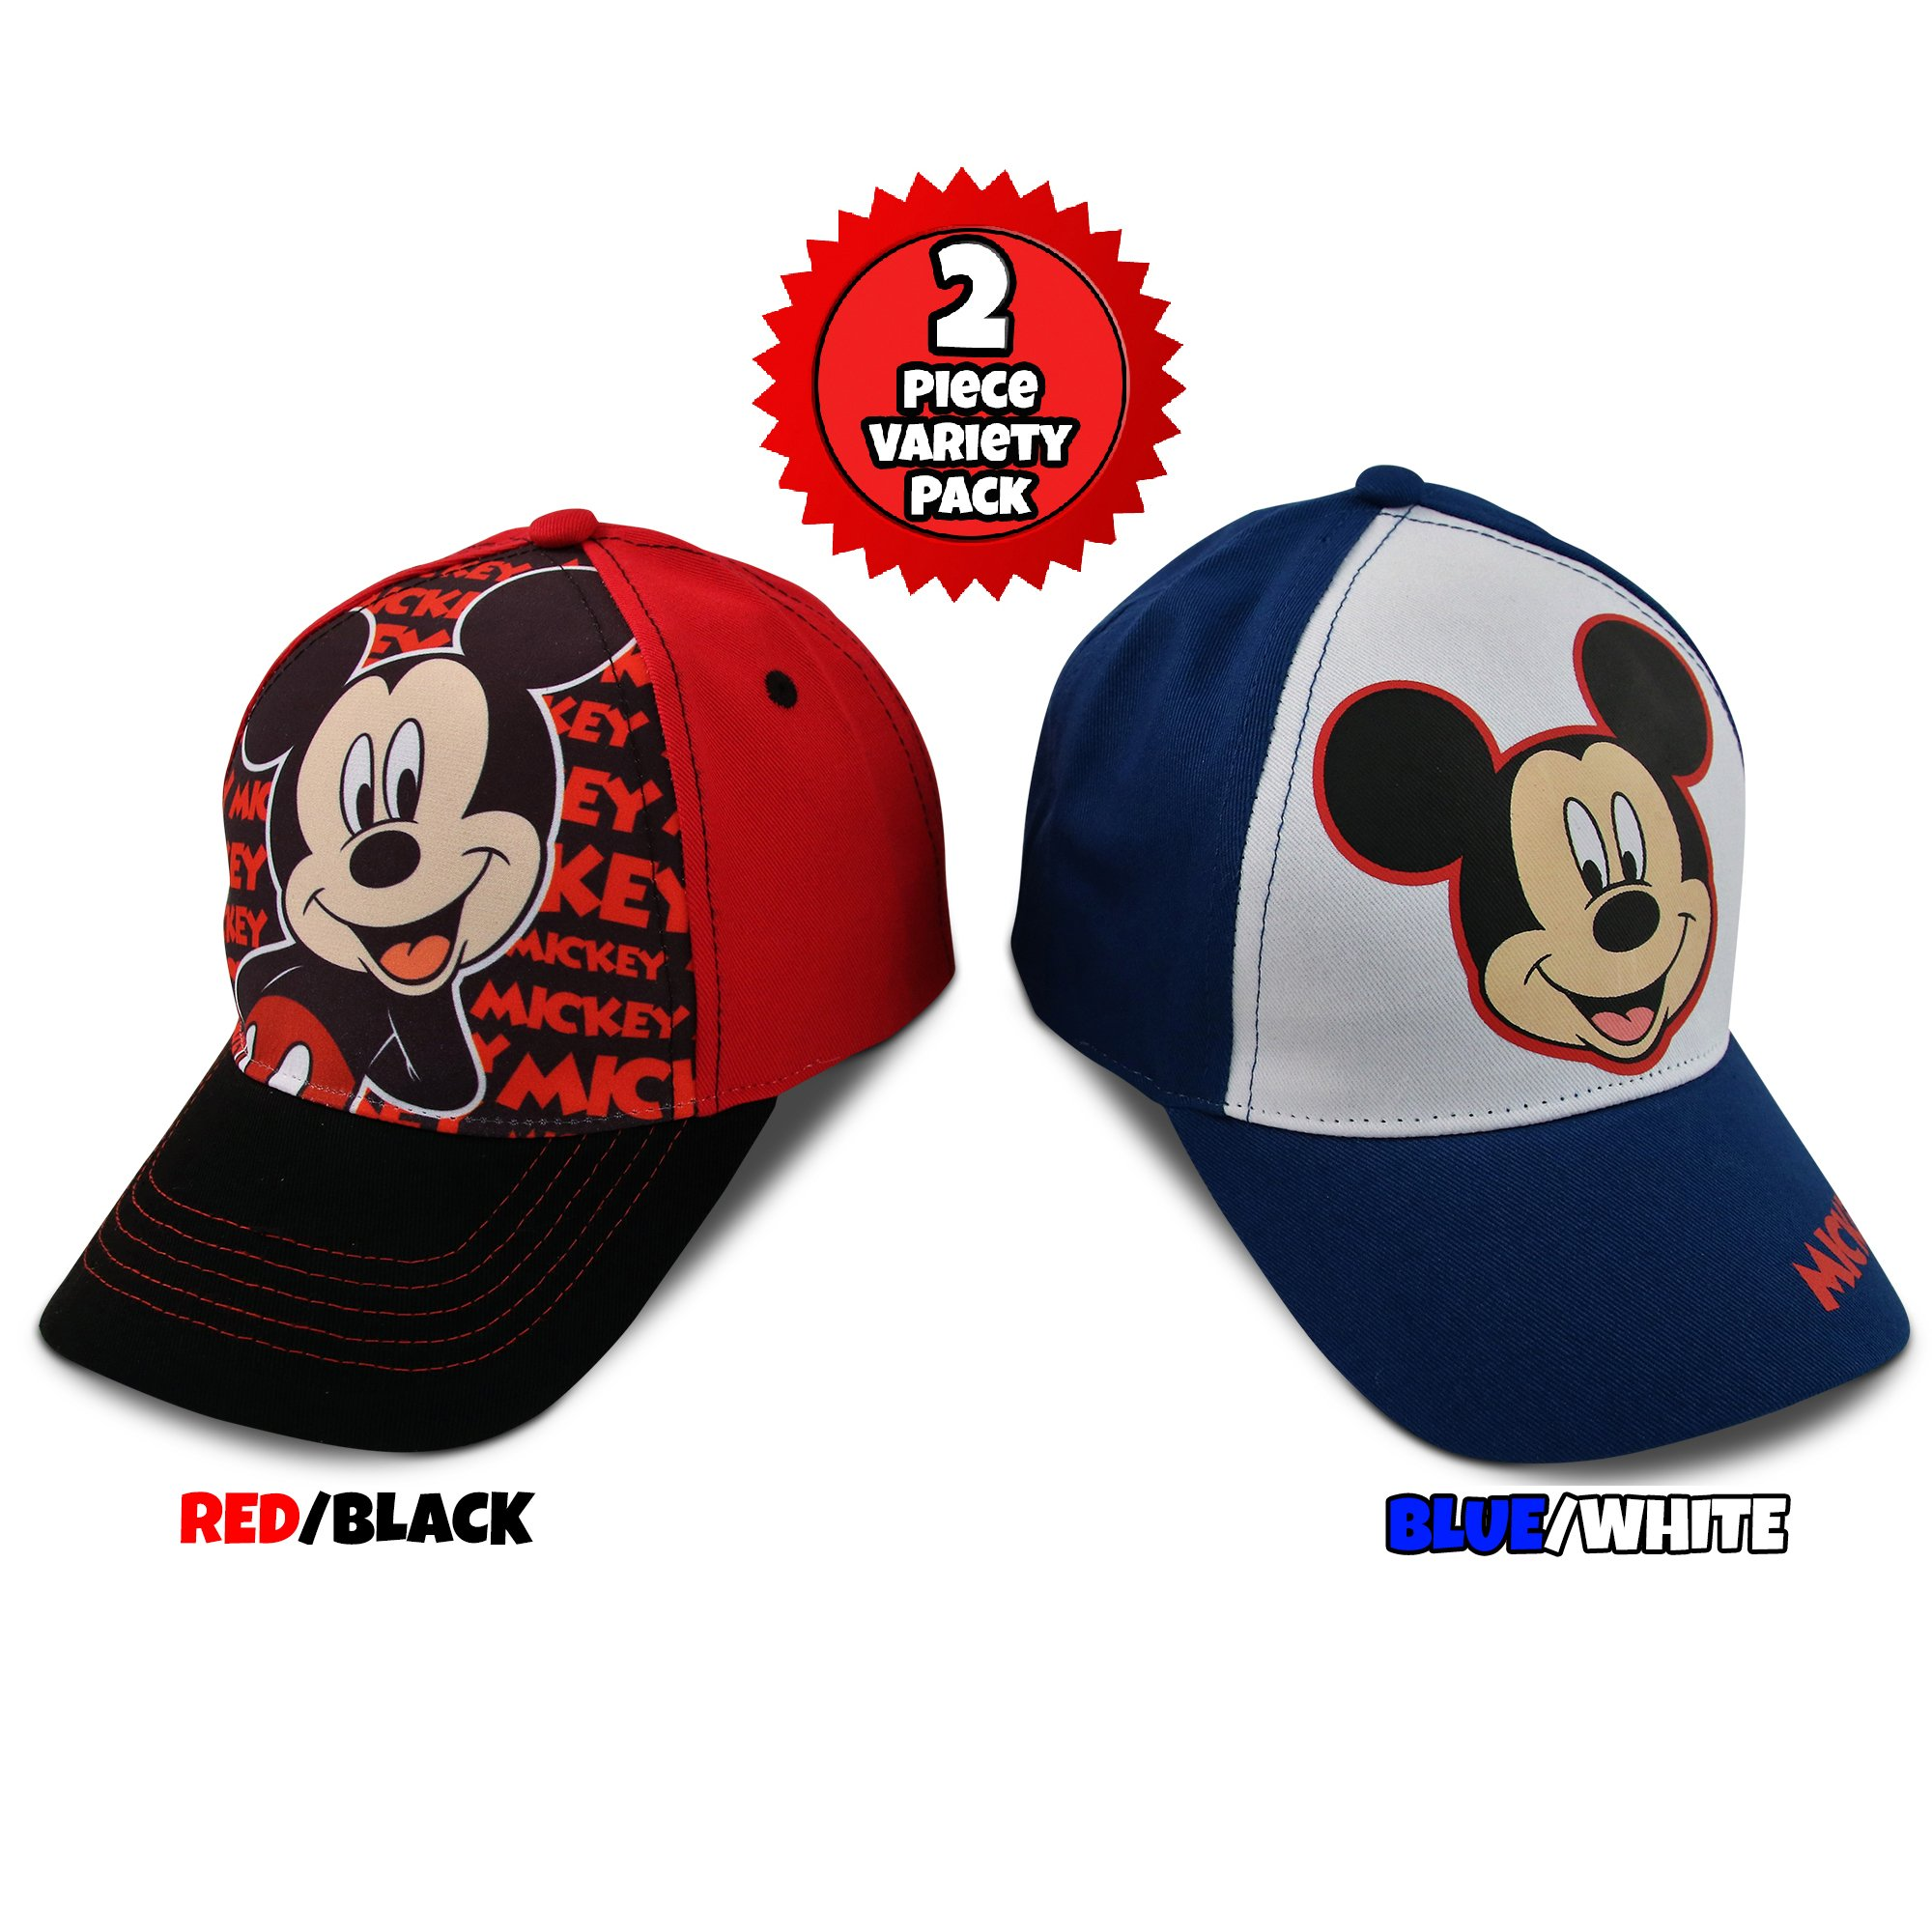 Disney Little Boys Assorted Character Cotton Baseball Cap, 2 Piece Design Set, Age 2-7 (Toddler Boys – Age 2-4 – 51 cm, Mickey Mouse Design – 2 Piece Set) by Disney (Image #1)